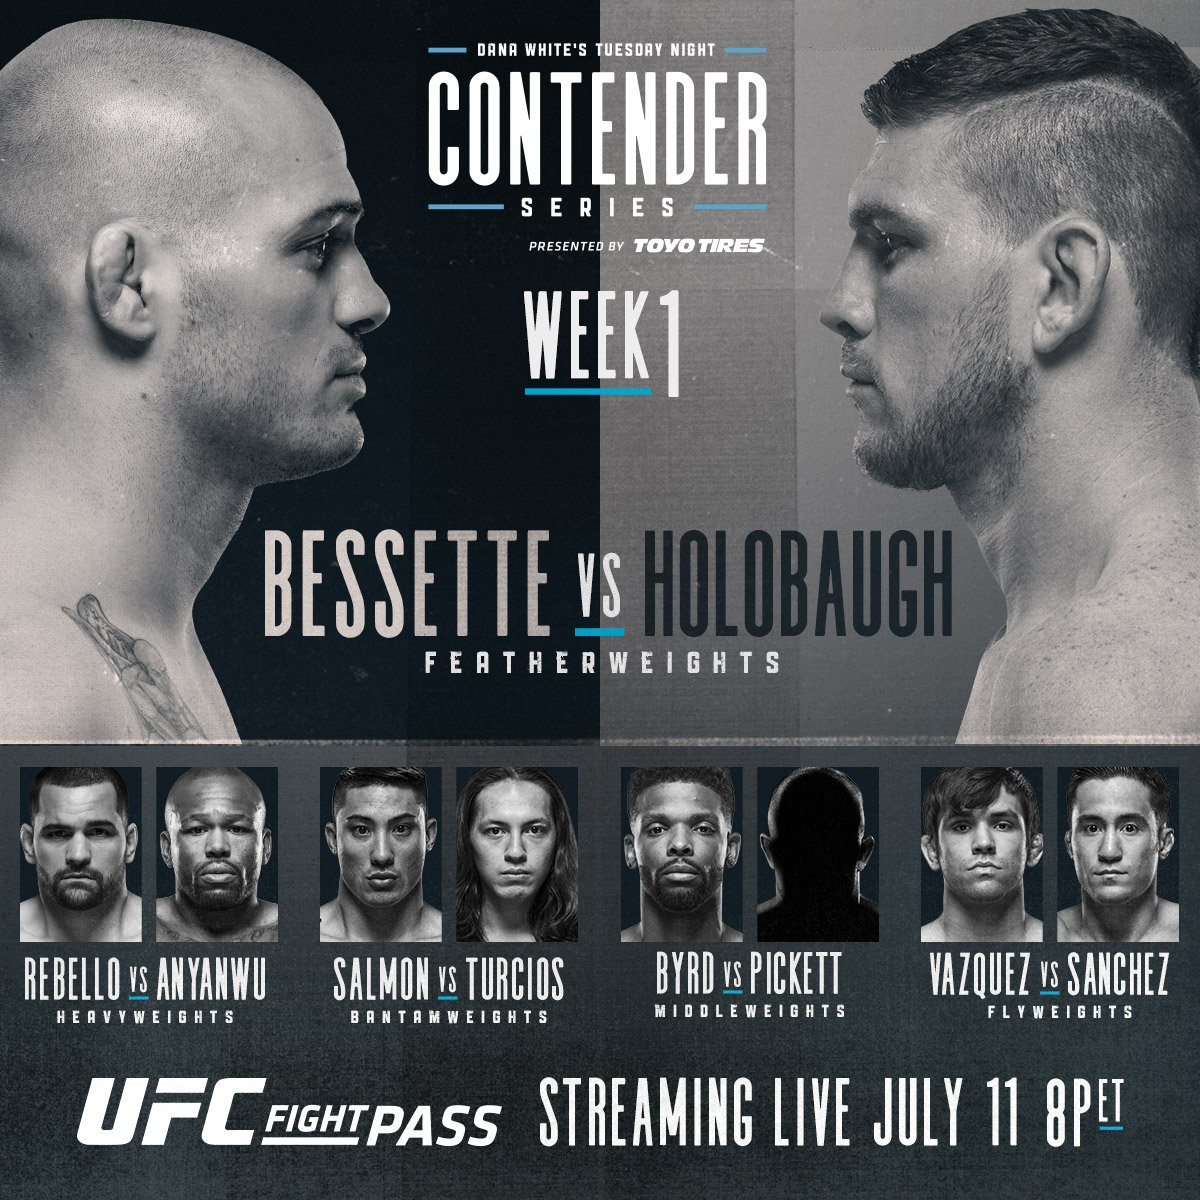 Dana White's Tuesday Night Fights Contender Series - Week 1 results